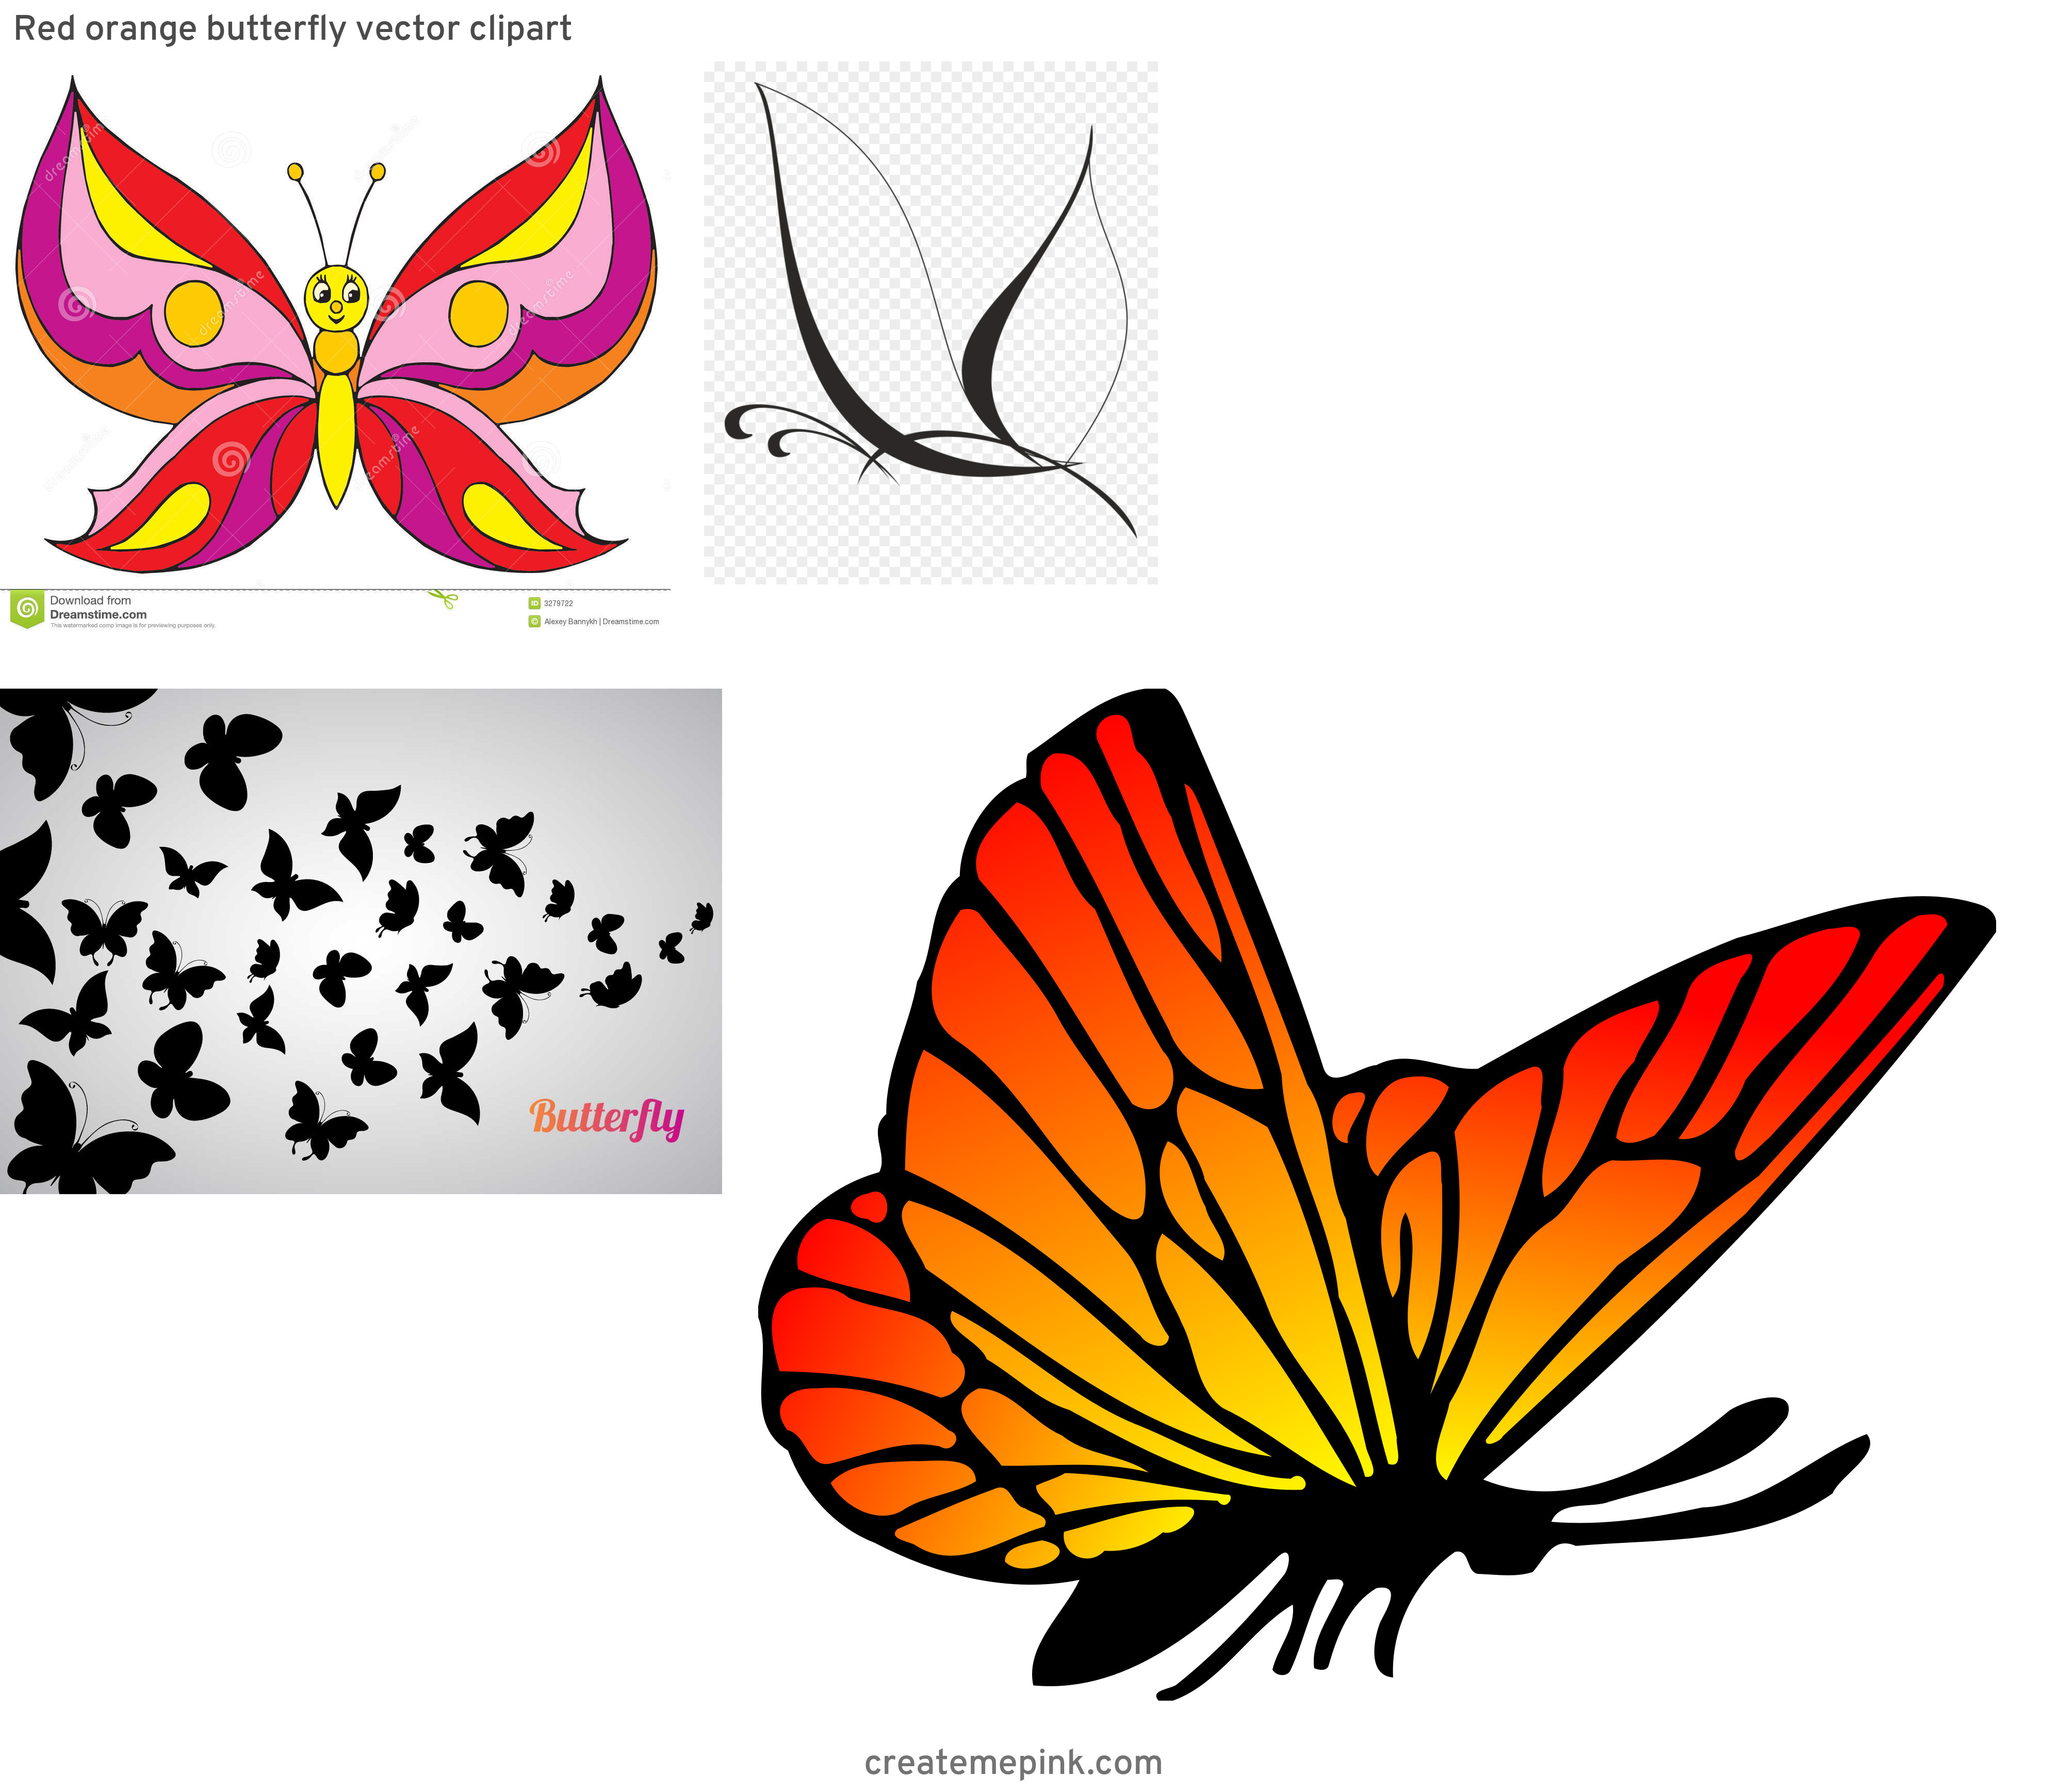 Butterfly Vector Graphics Clip Art: Red Orange Butterfly Vector Clipart